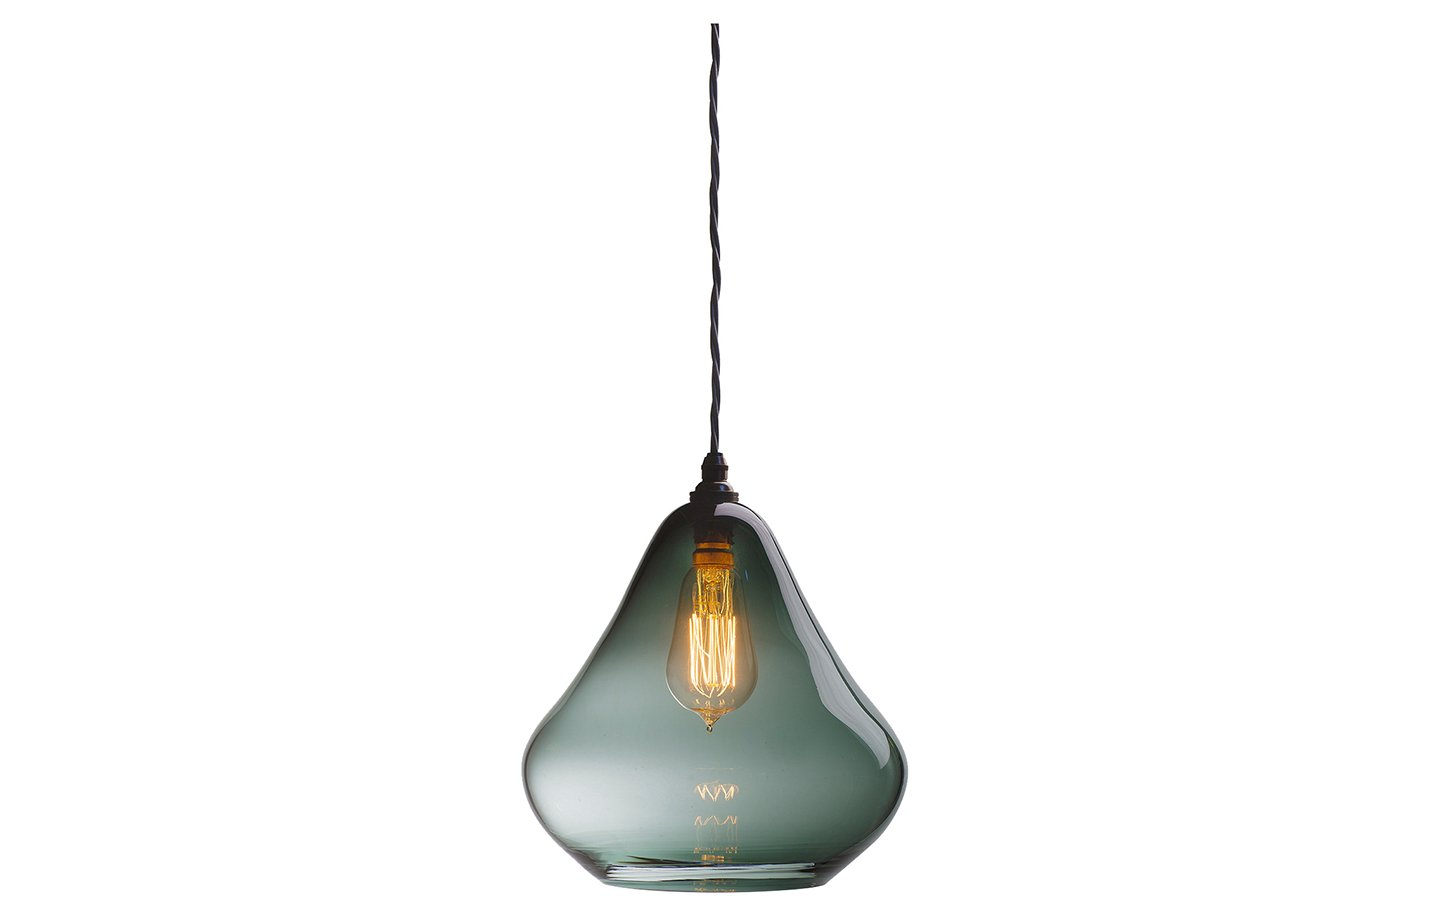 The pear drops pendant lamps – large